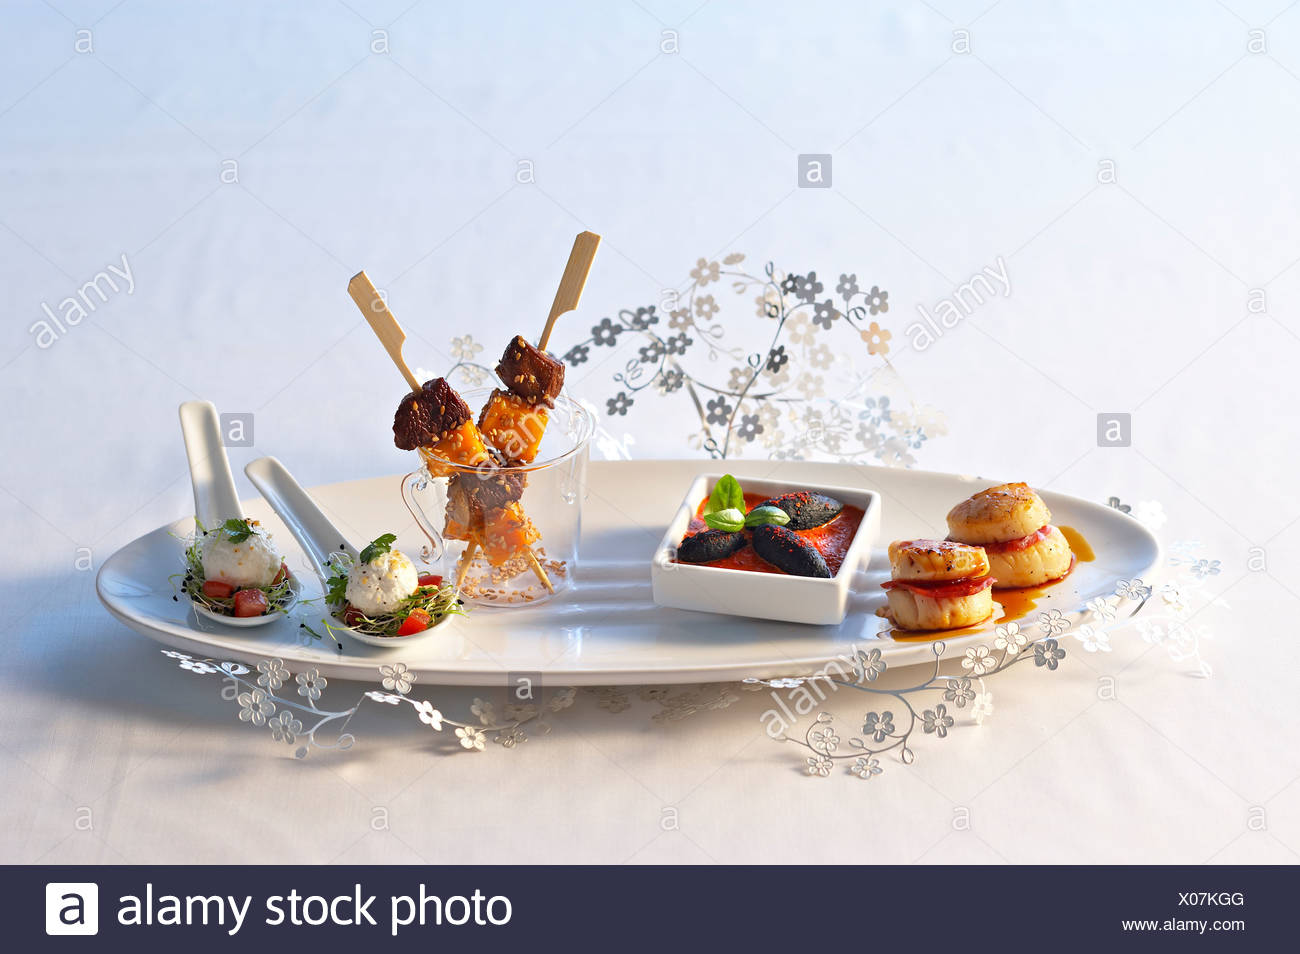 cooking Salted Appetizer - Stock Image